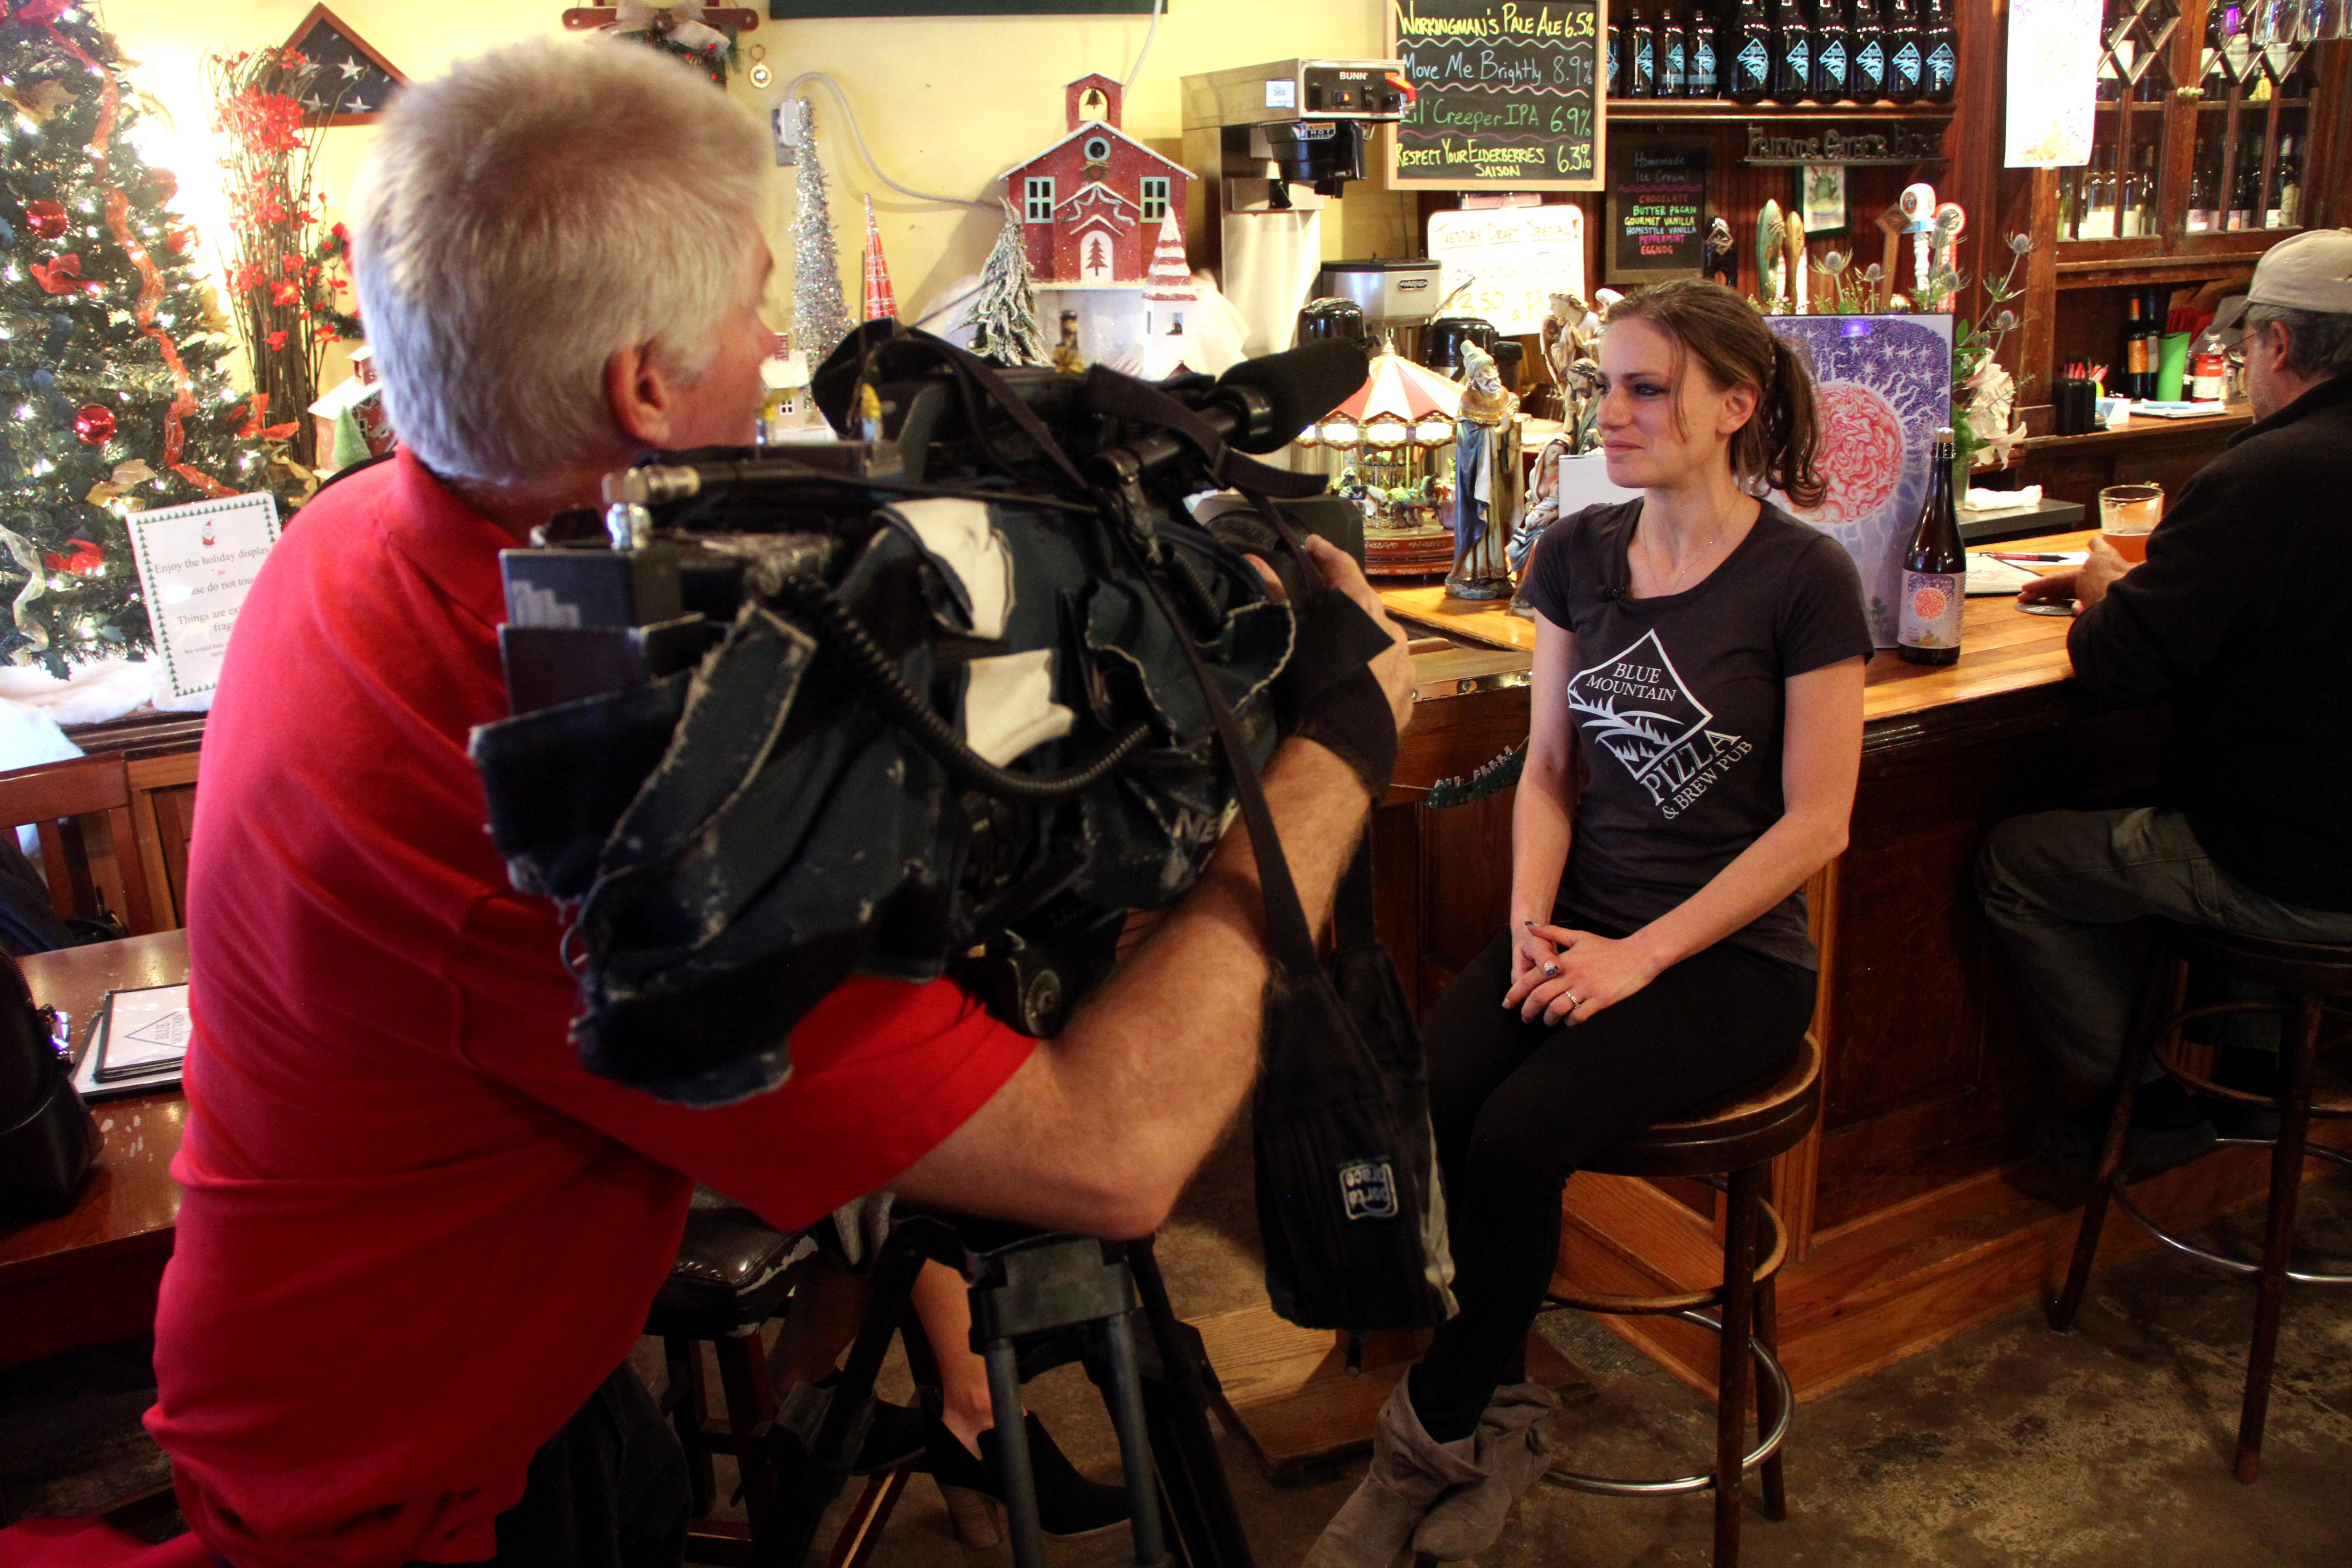 Adrienne Tasin of Blue Mountain Pizza speaks with News 13 in Dec. 2017. (Photo credit: WLOS Staff)